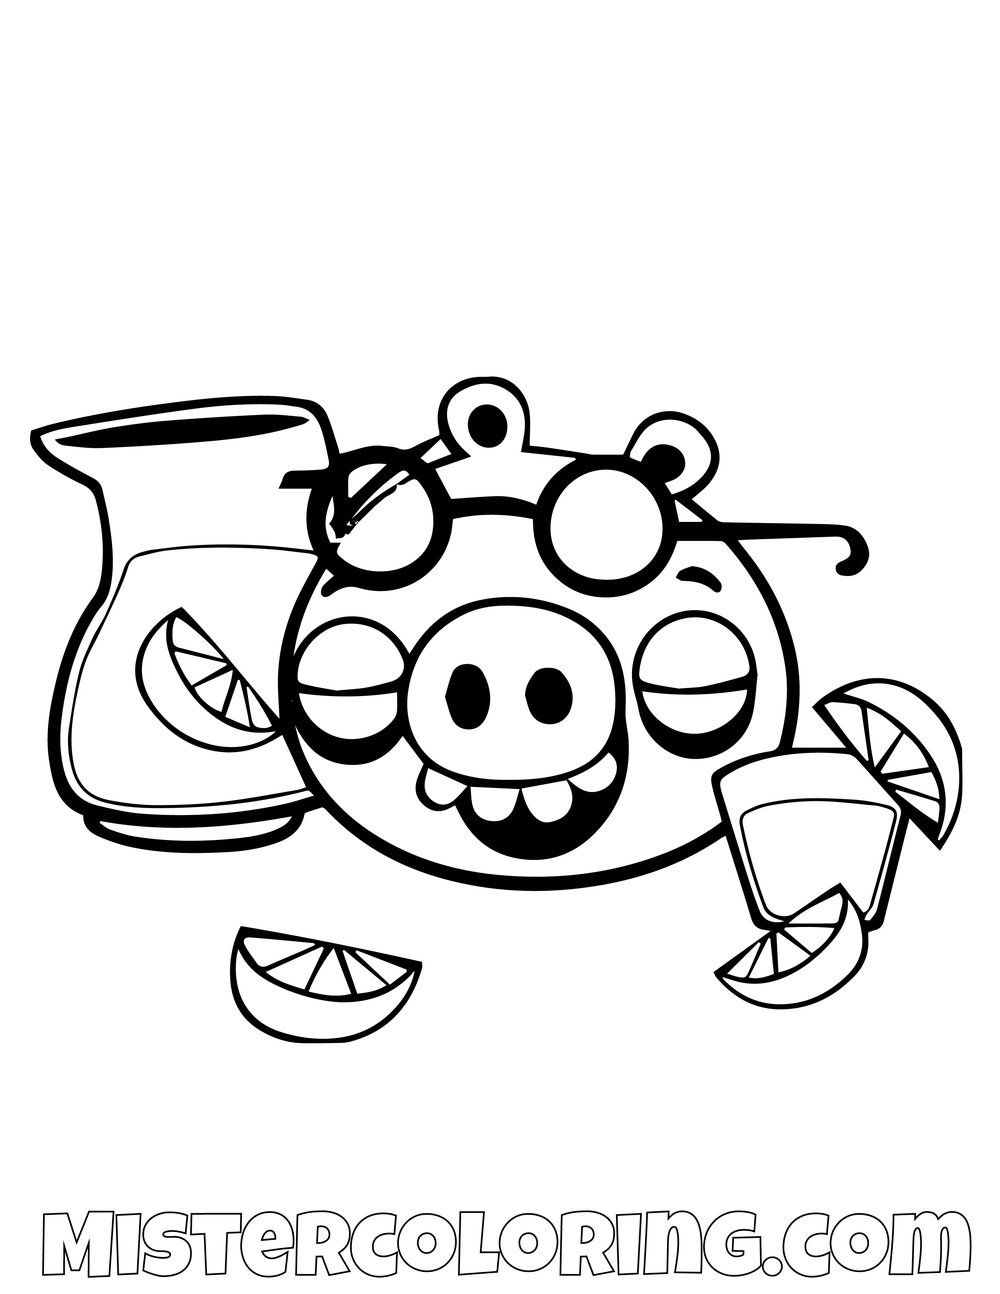 Pig Drinking Lemonade Angry Birds Coloring Pages Bird Coloring Pages Angry Birds Pigs Halloween Coloring Pages Printable